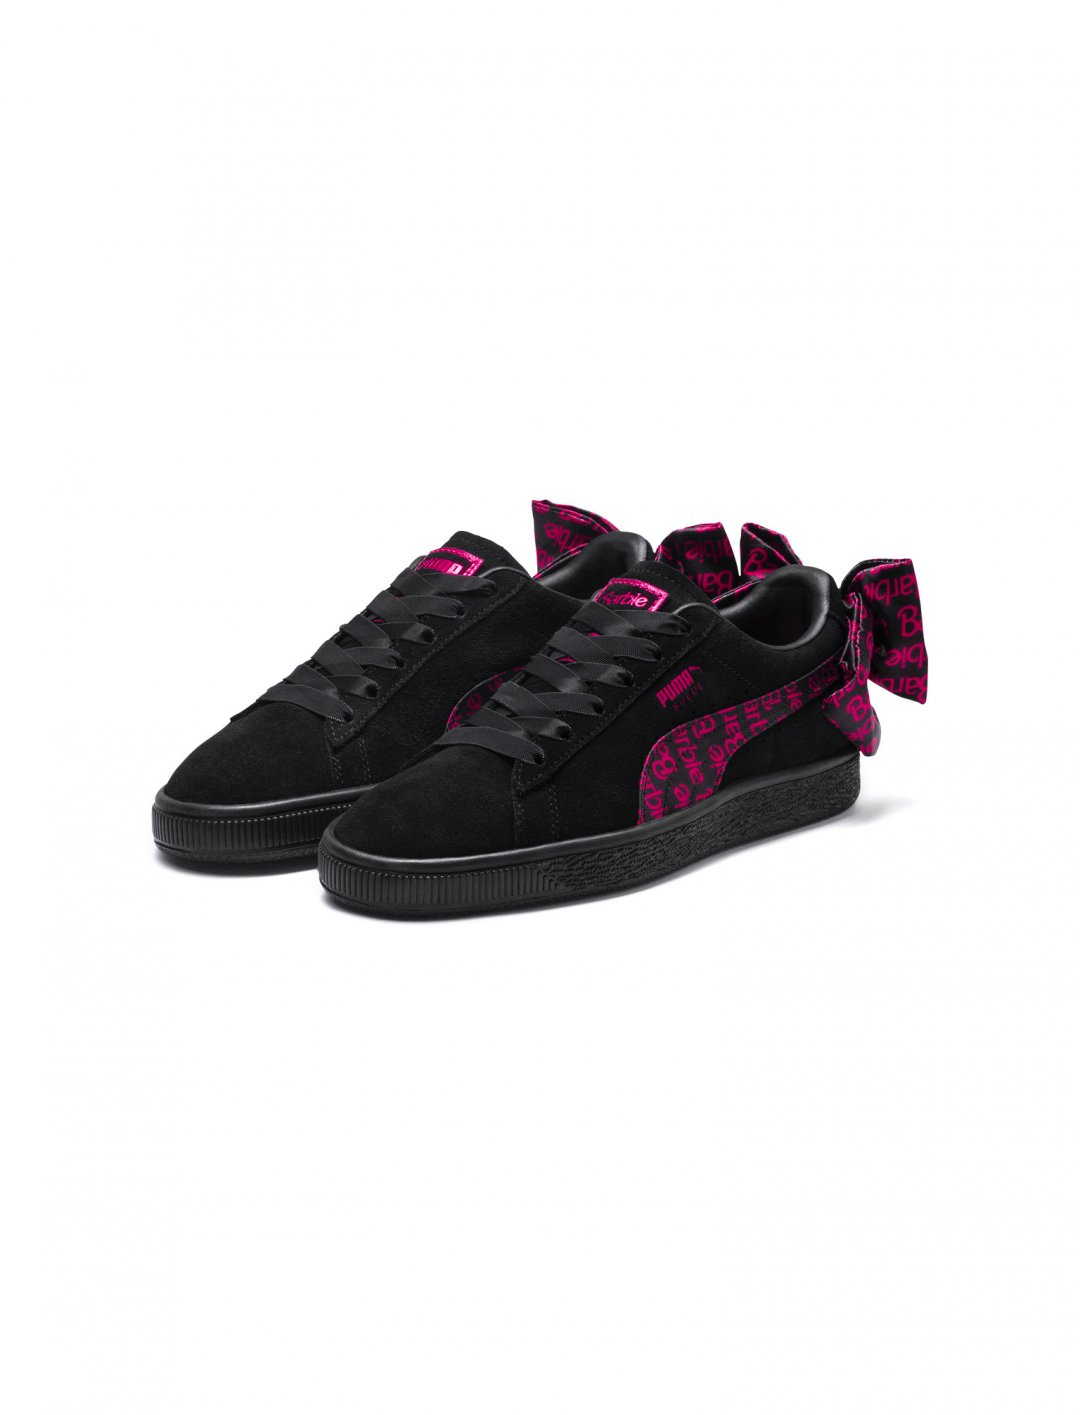 "Suede Classic Sneakers {""id"":12,""product_section_id"":1,""name"":""Shoes"",""order"":12} PUMA x BARBIE"